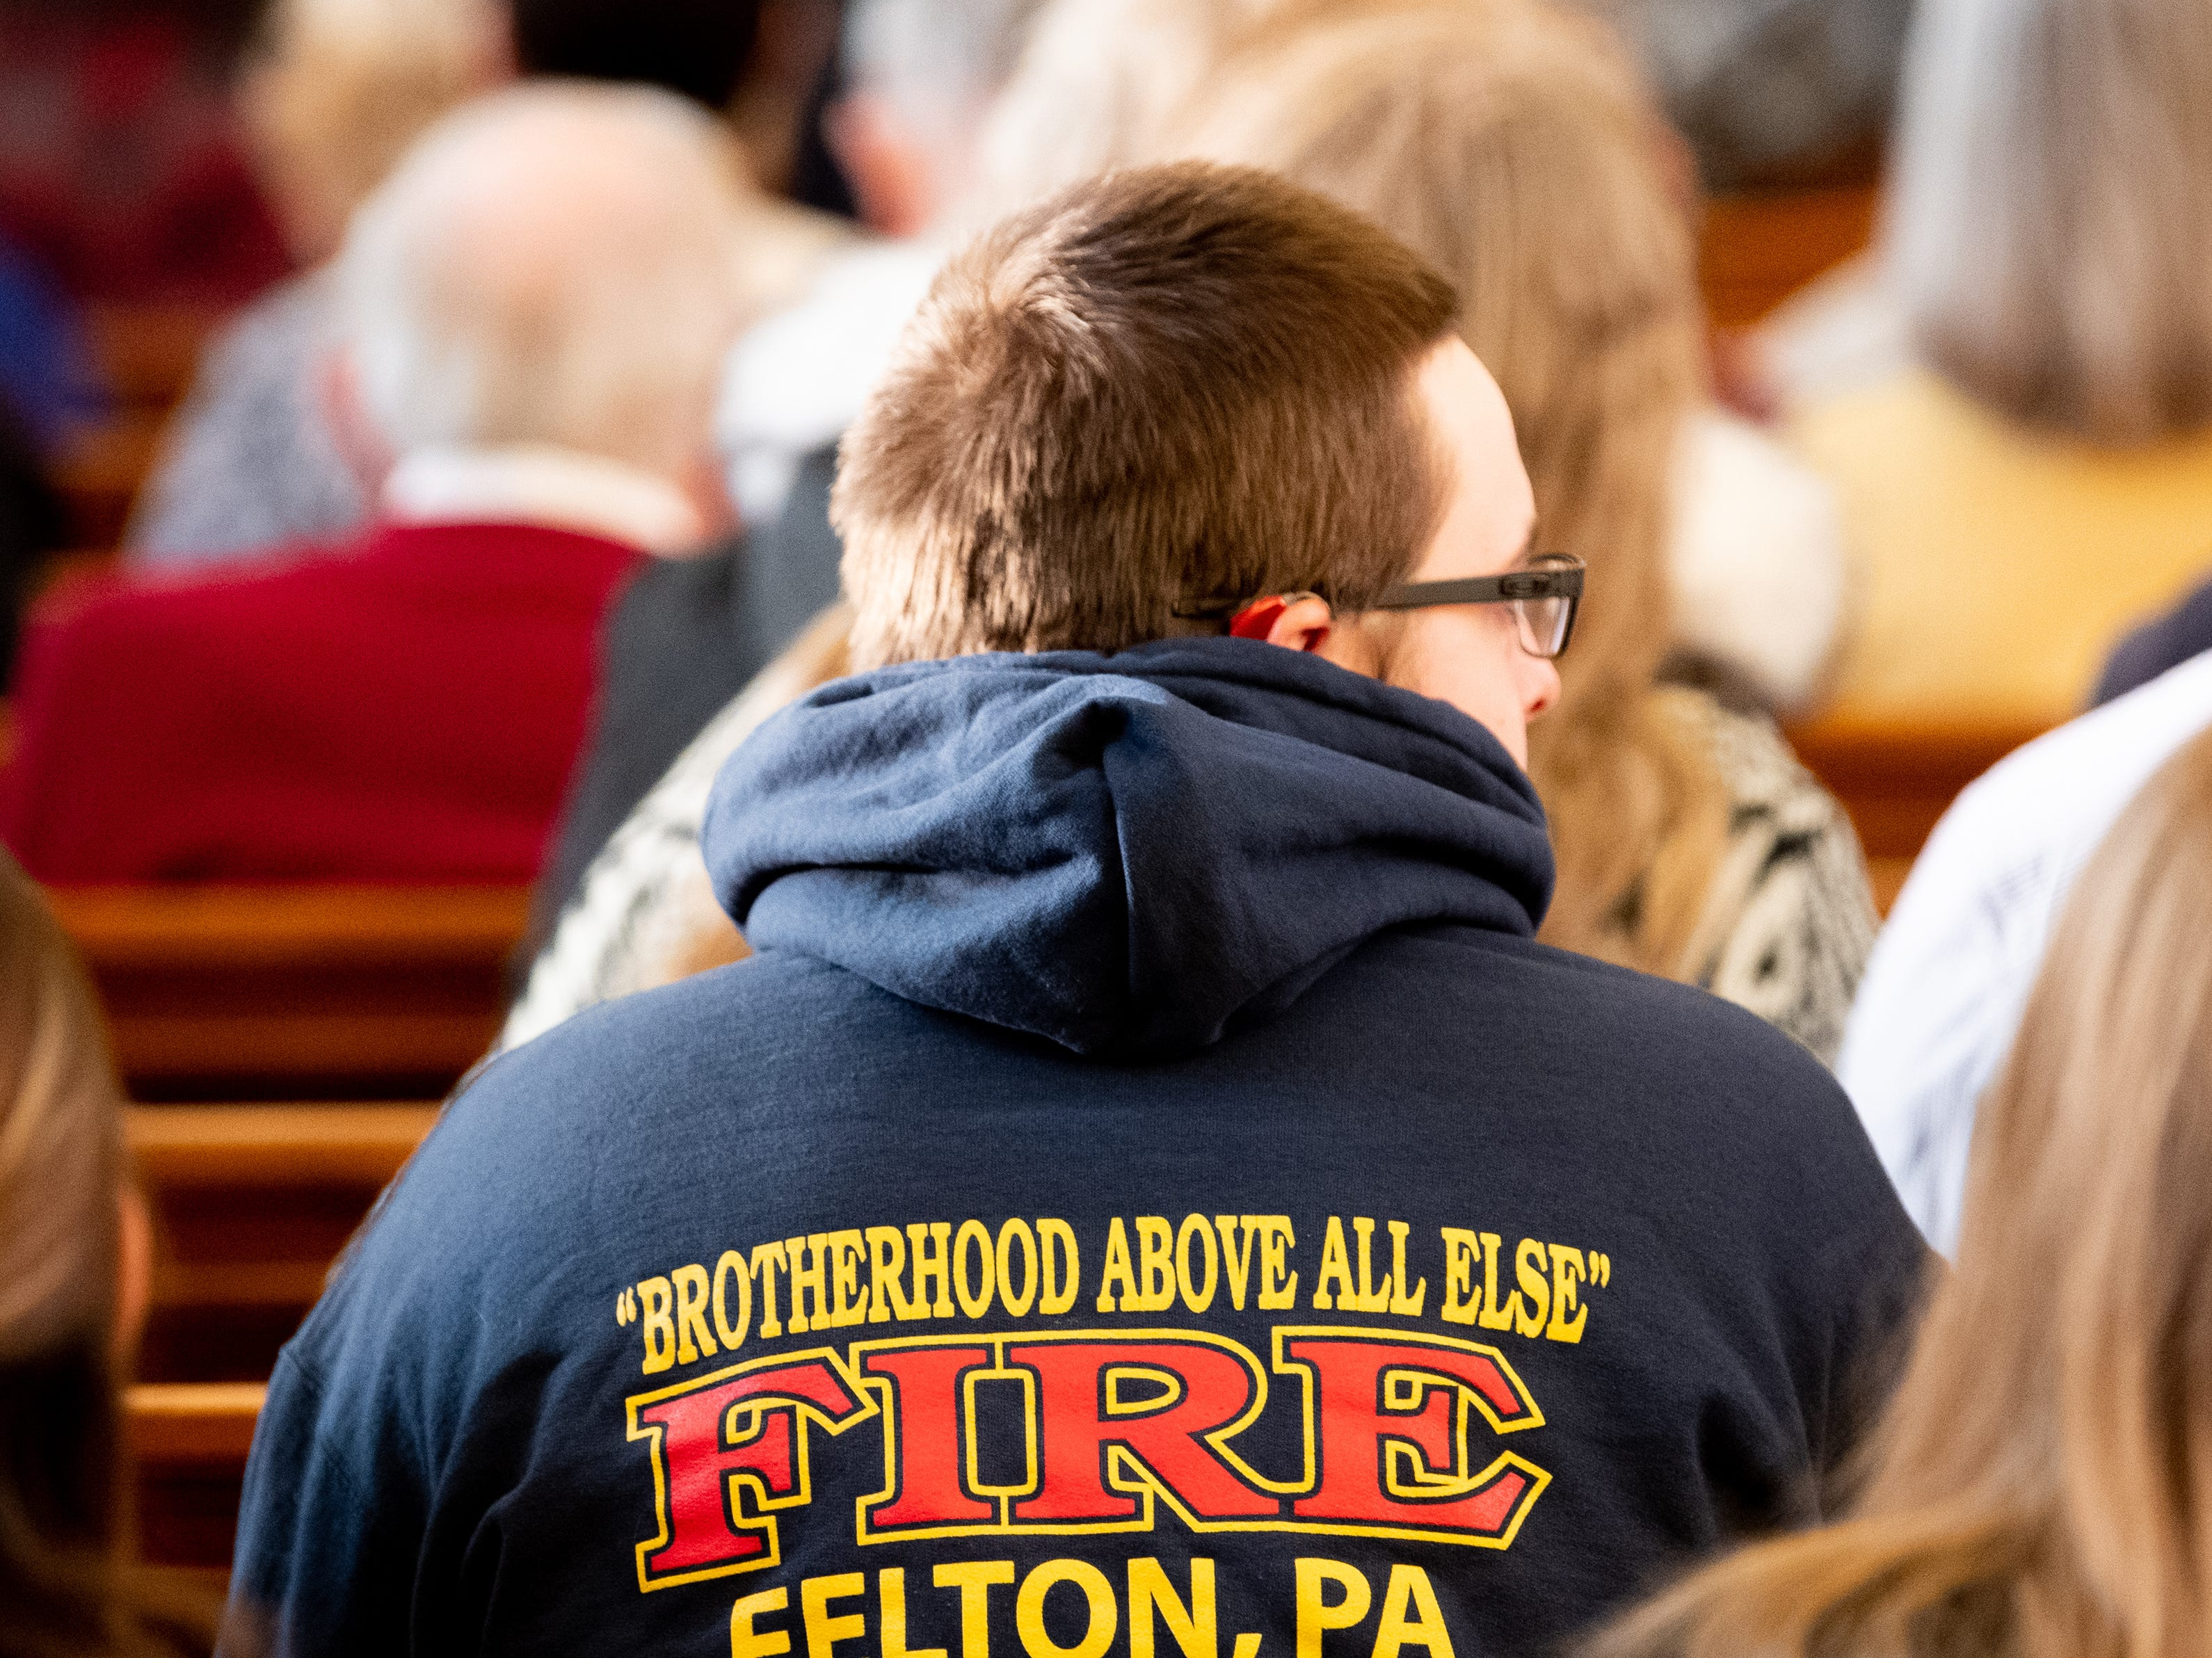 Firefighters from across the county came to hear and share stories about Flanscha and Anthony, March 22, 2019.